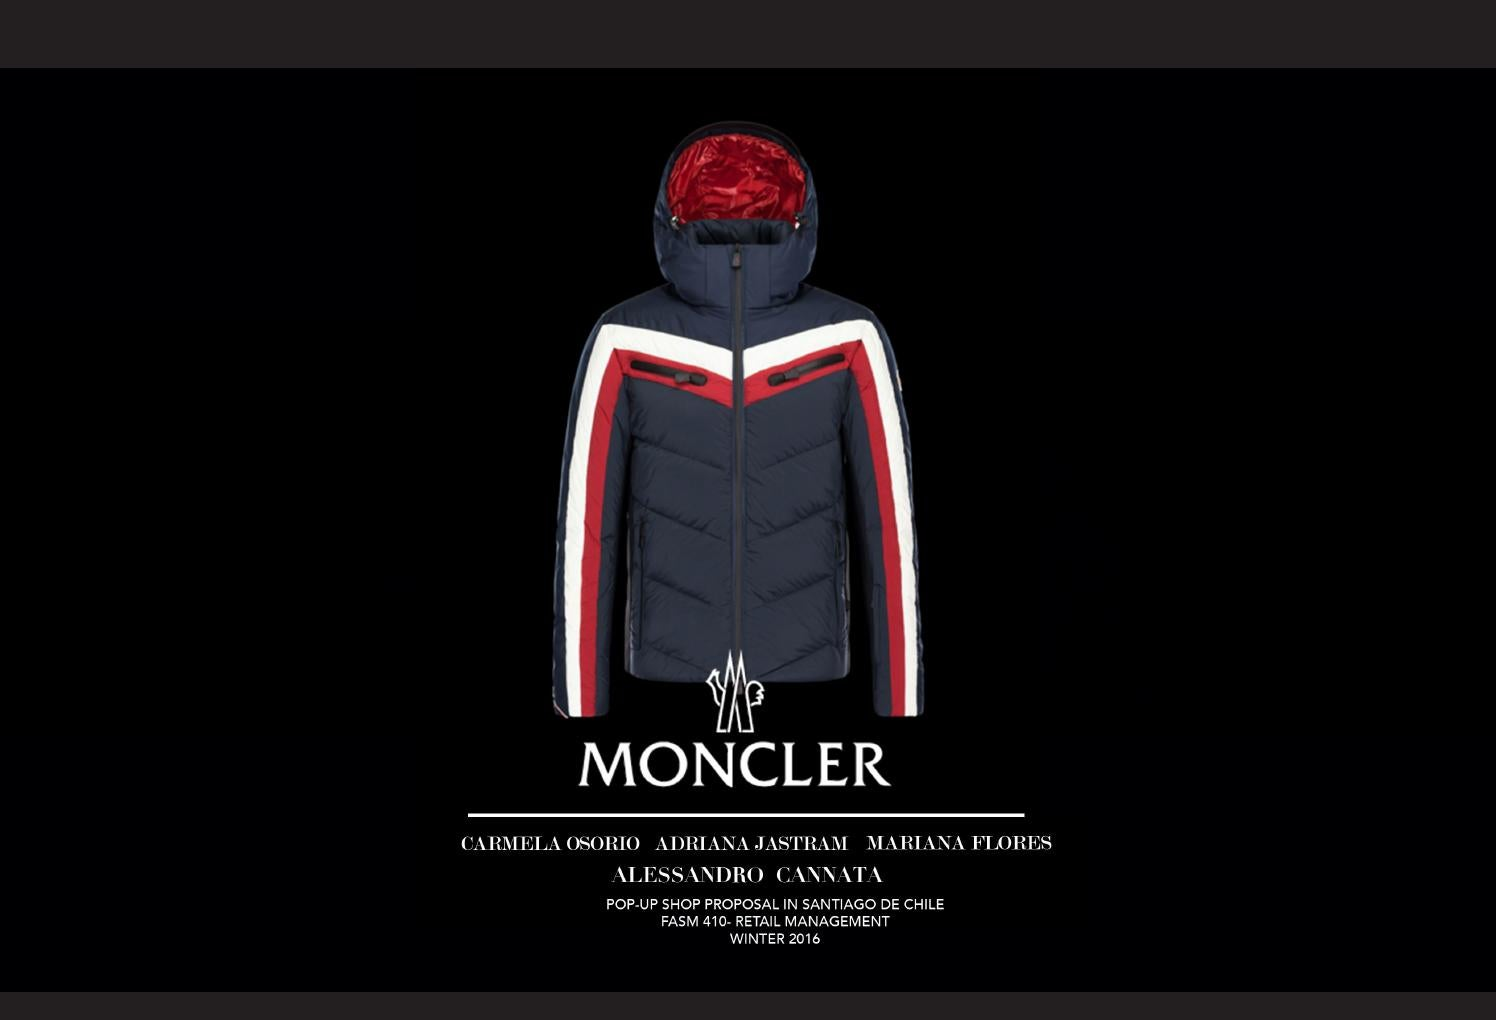 moncler 2014 annual report